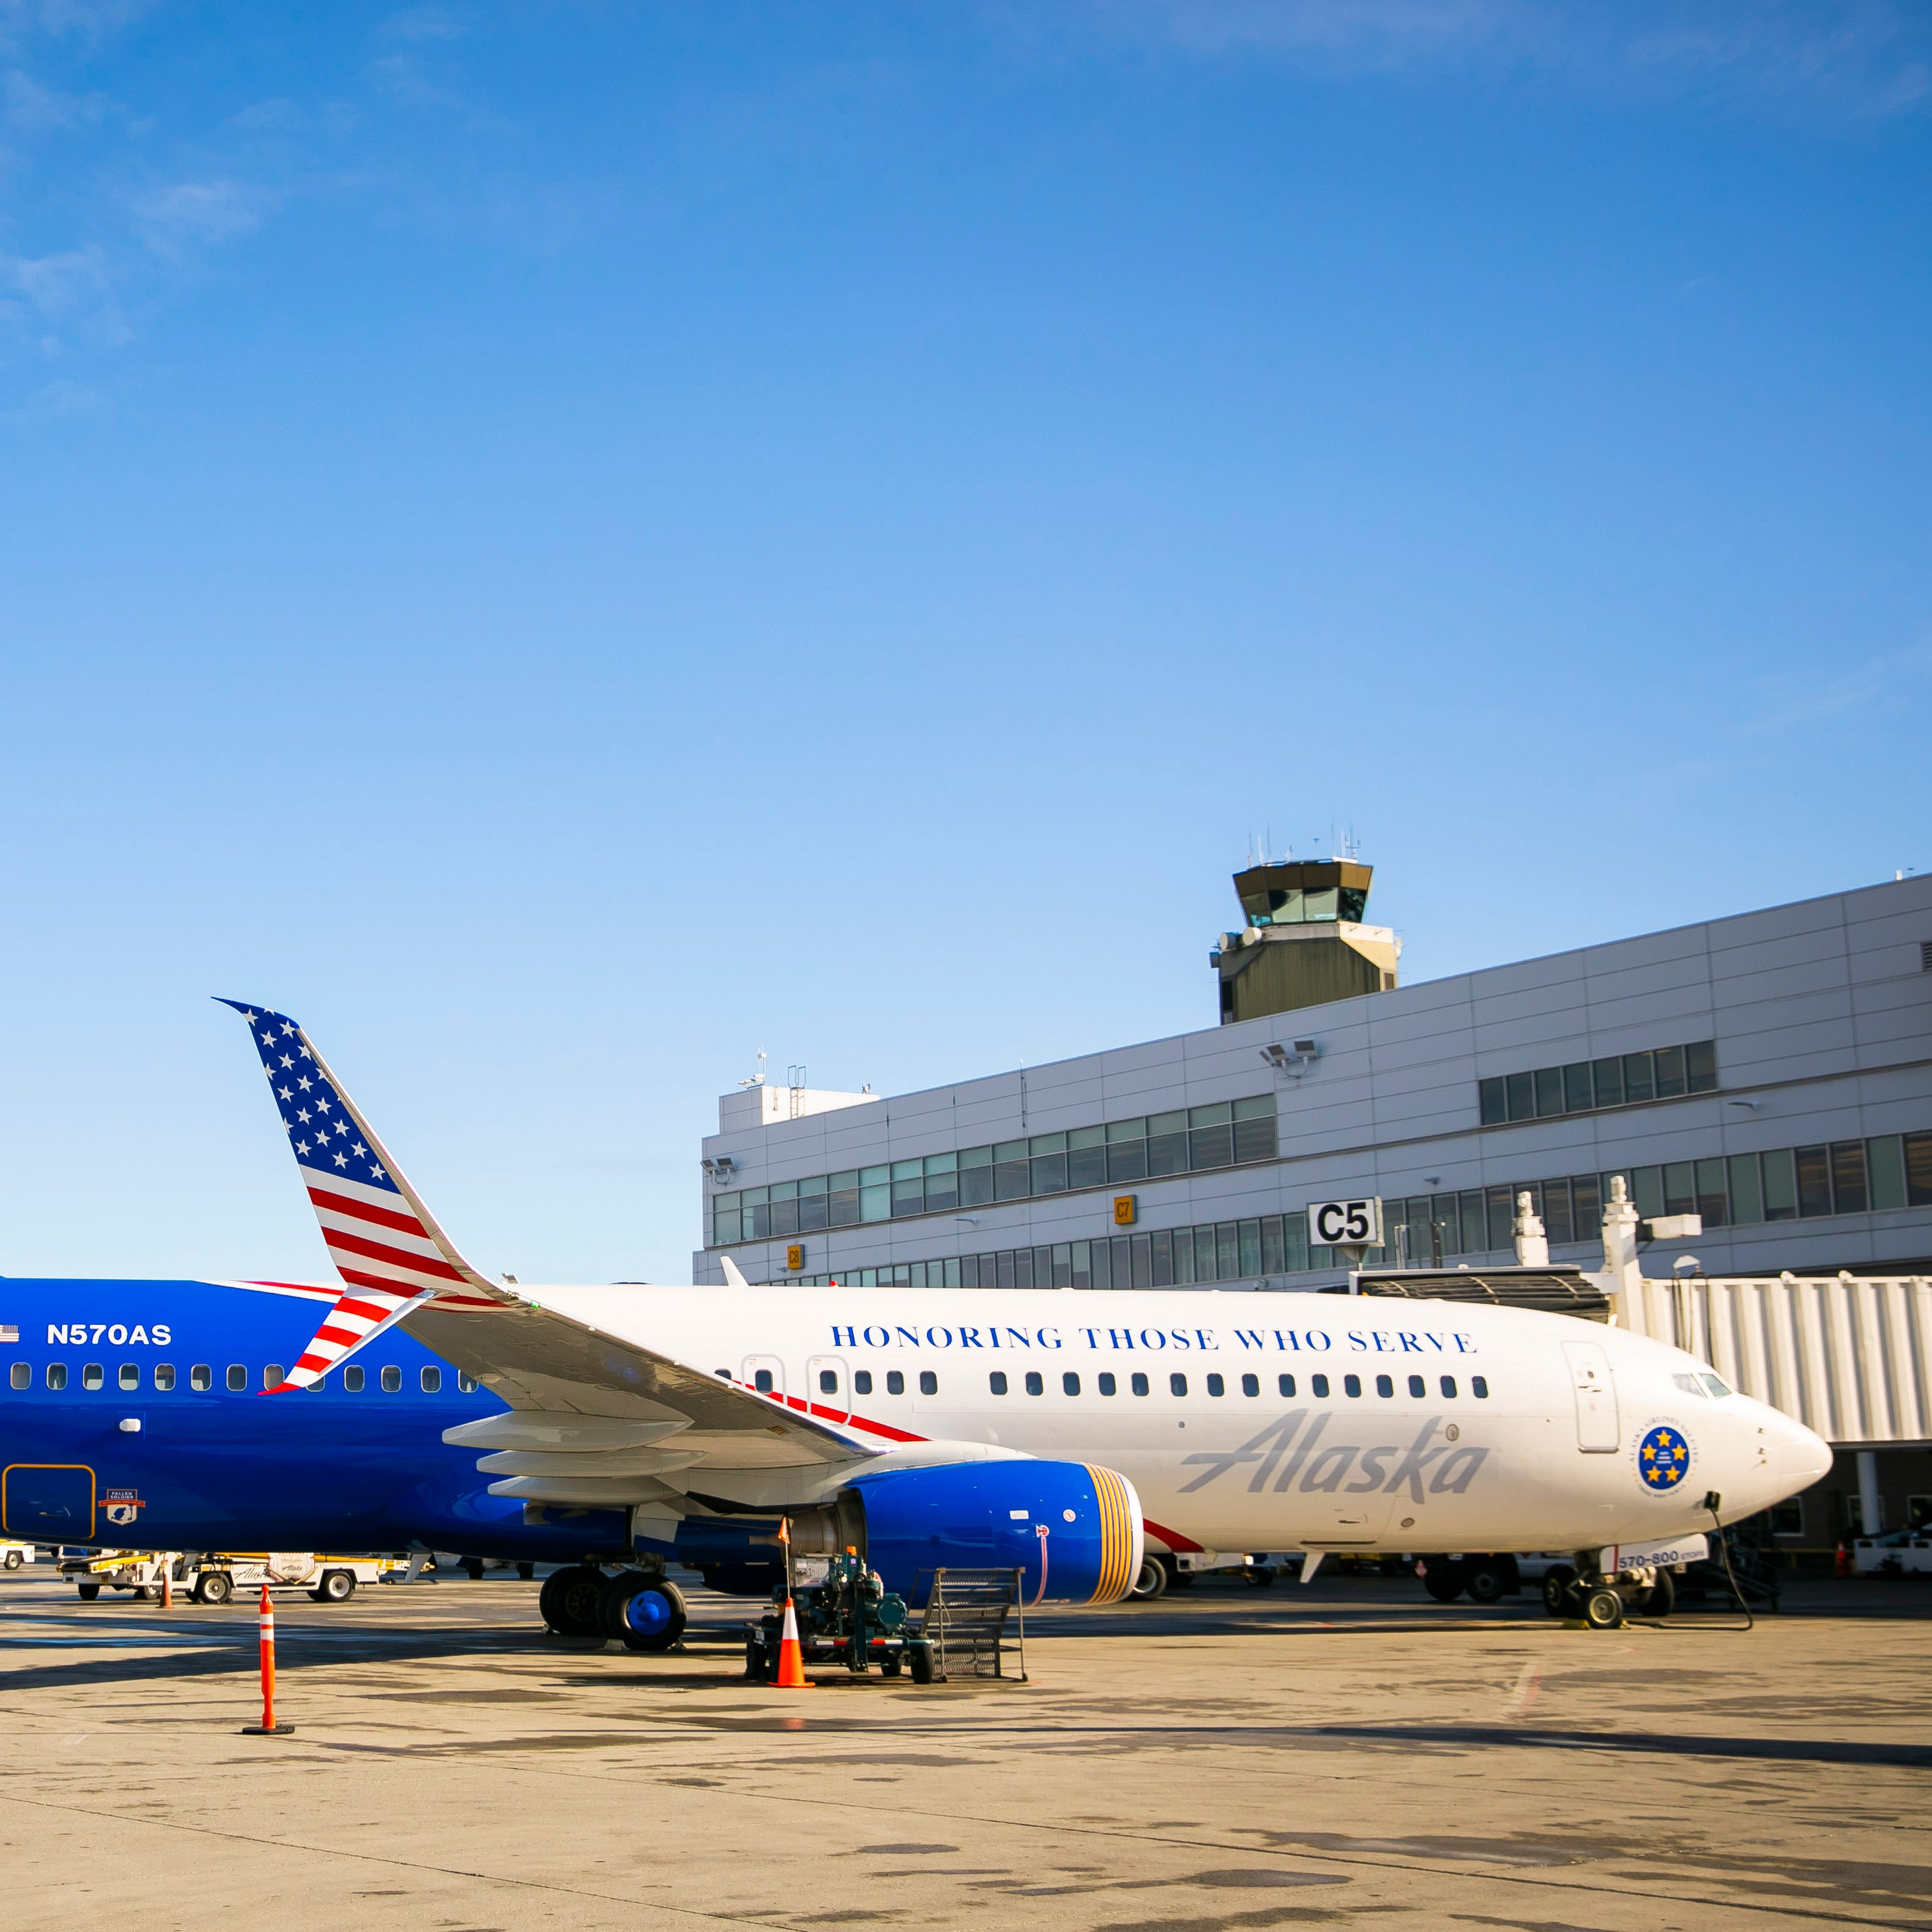 Alaska Airlines rolled out a military-themed livery this week ahead of an honor flight for veterans from Alaska to Washington, D.C. The patriotic paint scheme is on a 737-800 ETOPS aircraft.